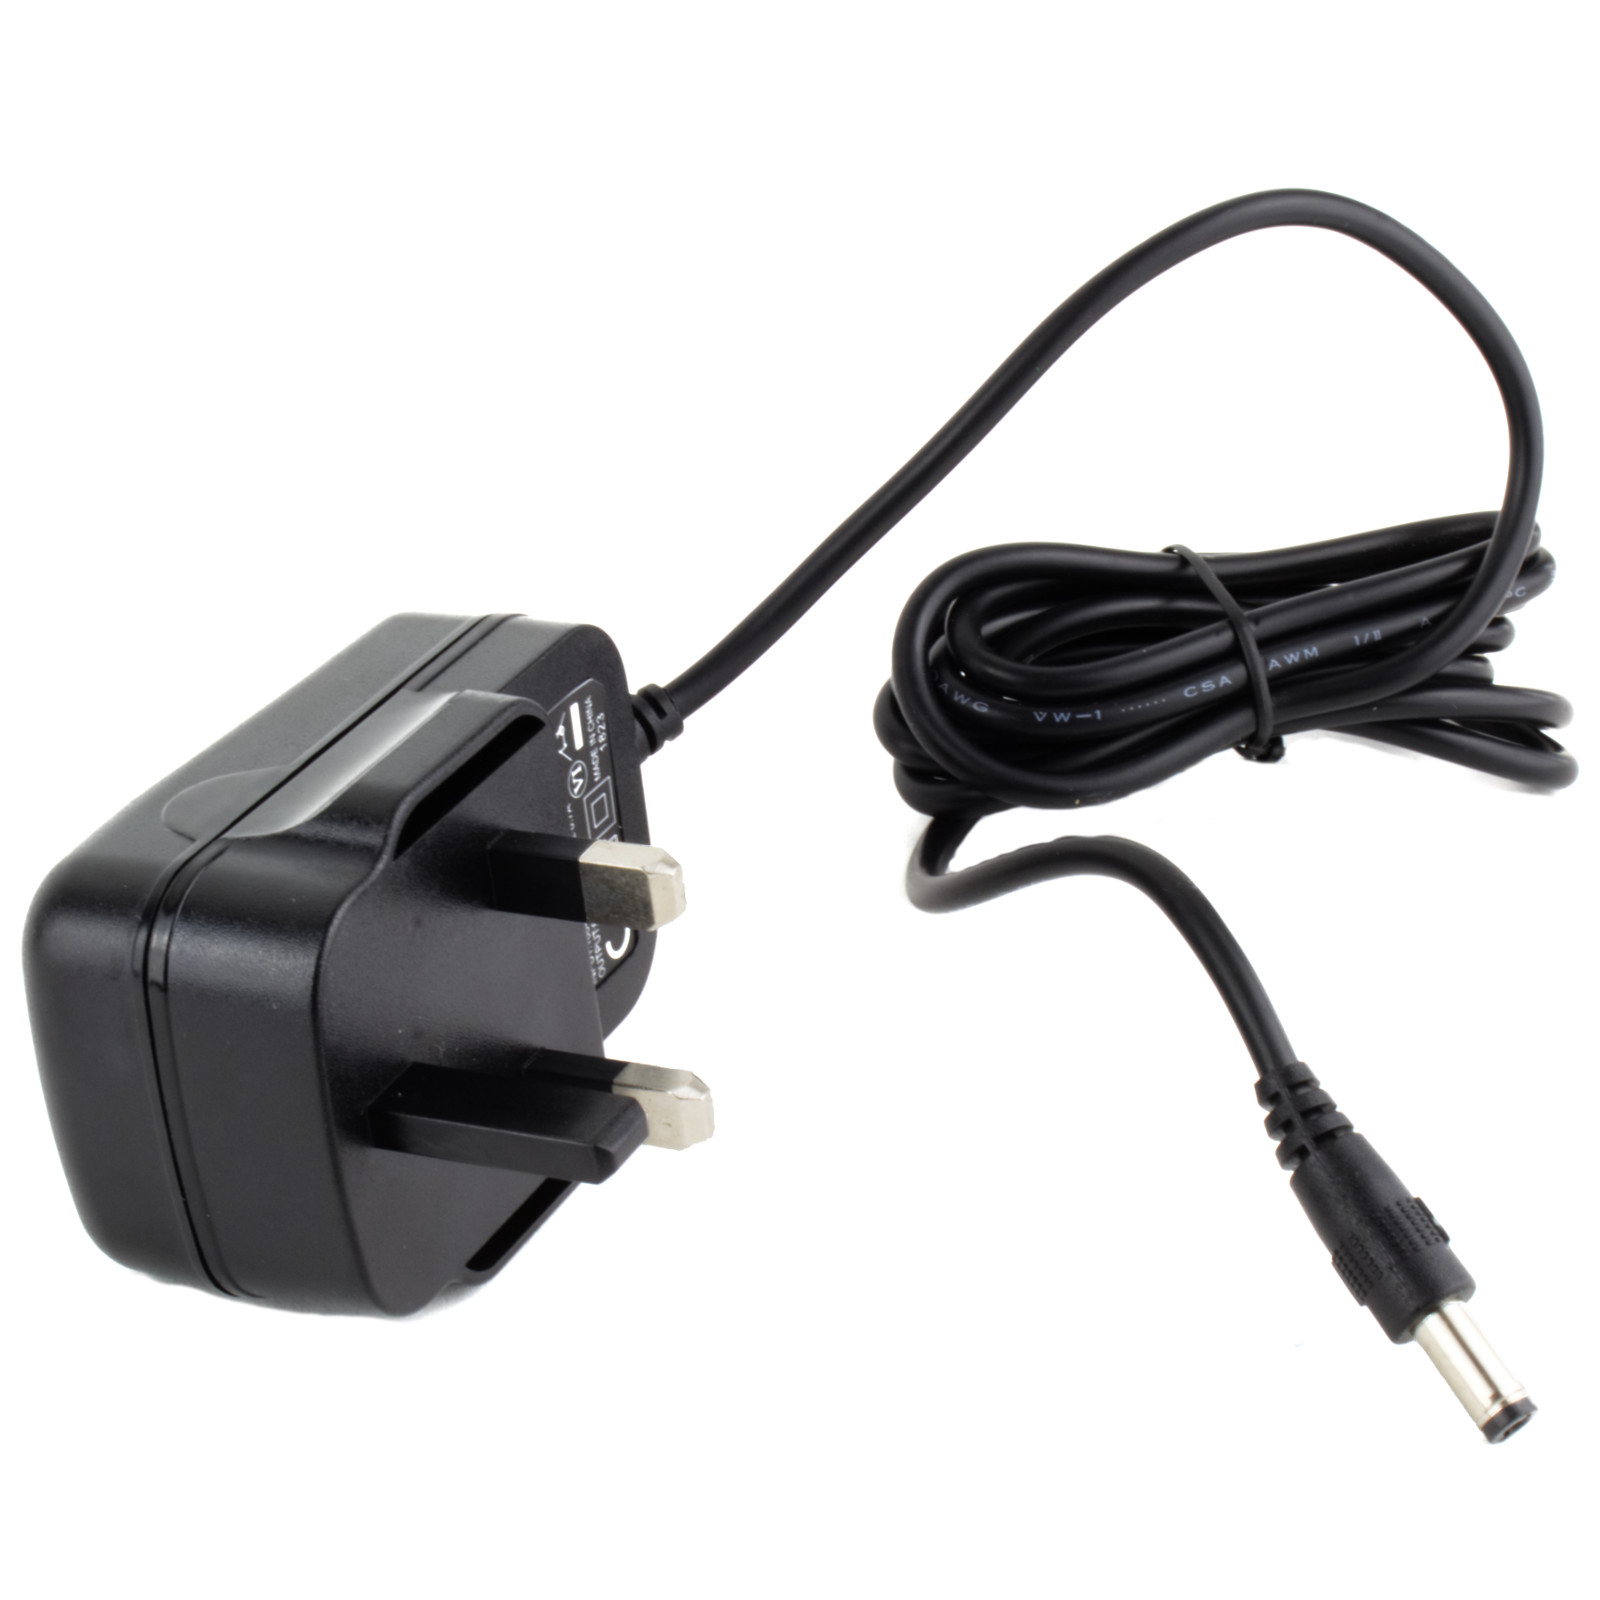 MyVolts Ripcord USB to 12V DC power cable compatible with the Behringer Pro-1 Synth